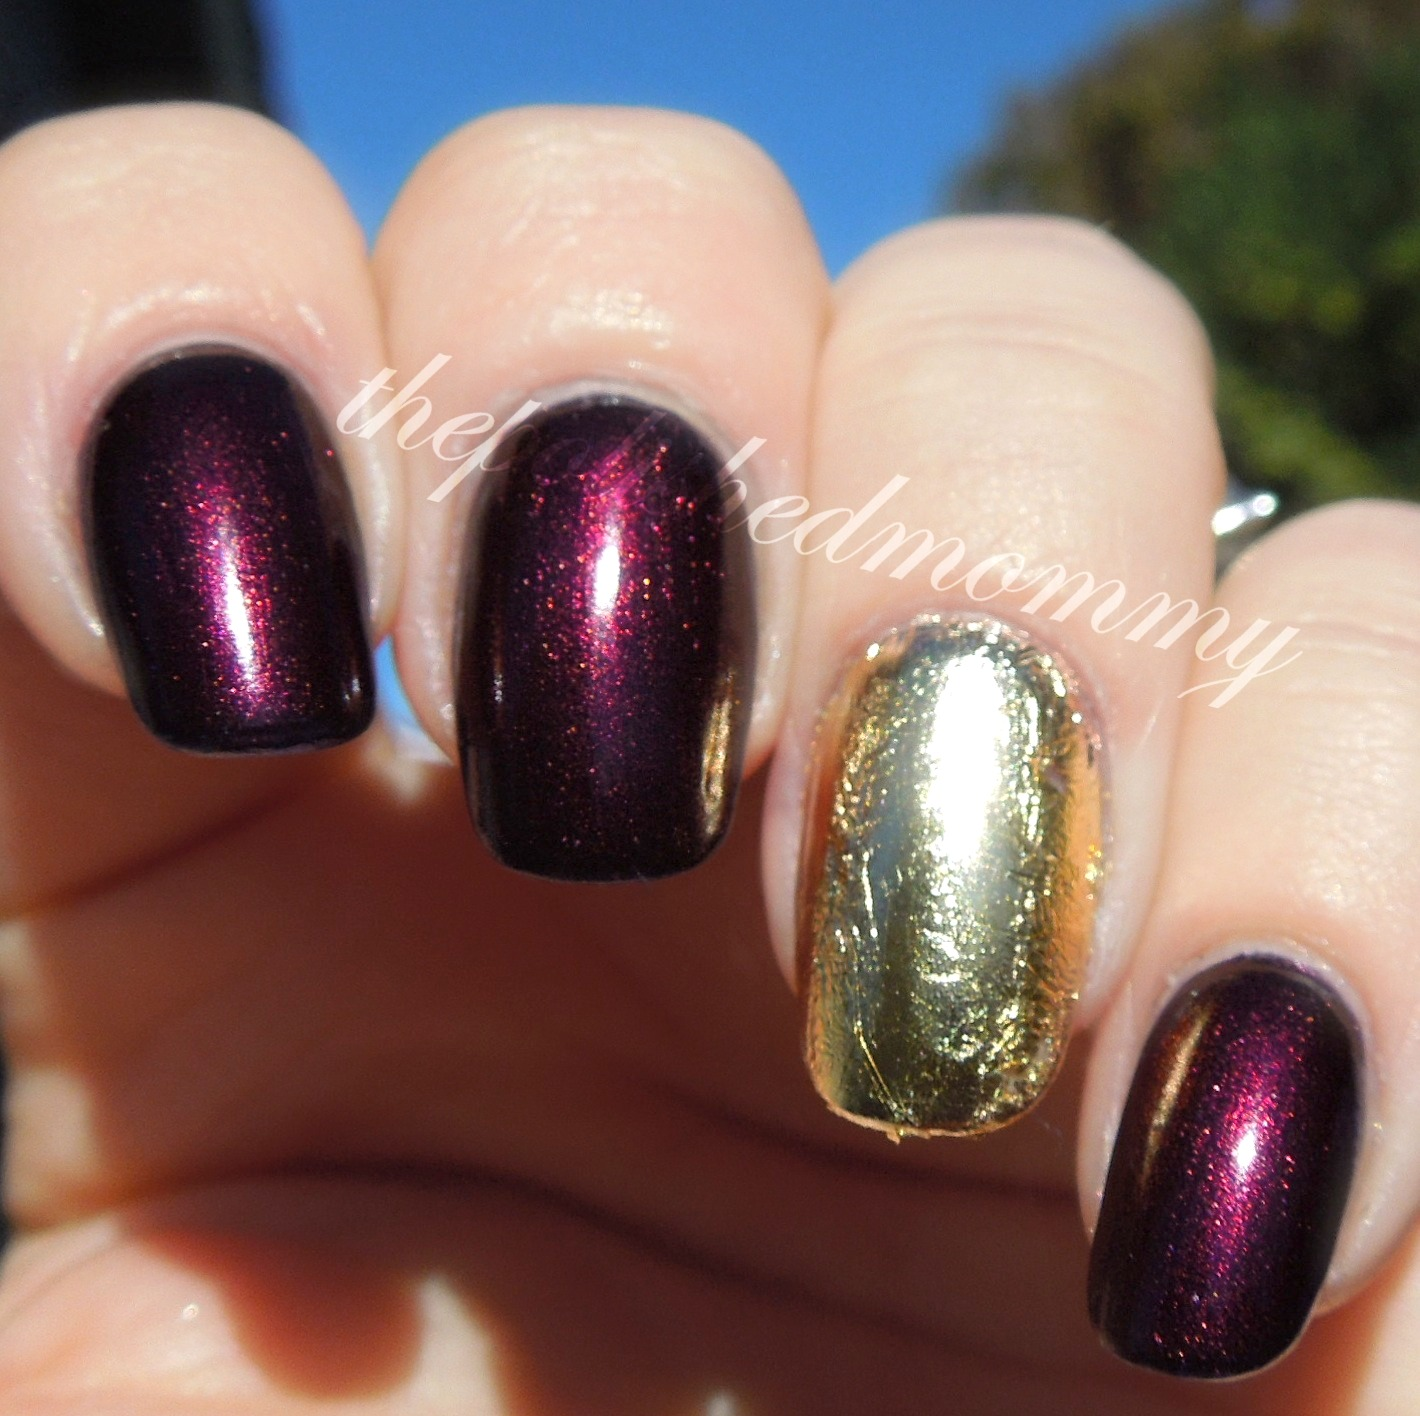 Gold Leaf Archives - The Polished Mommy